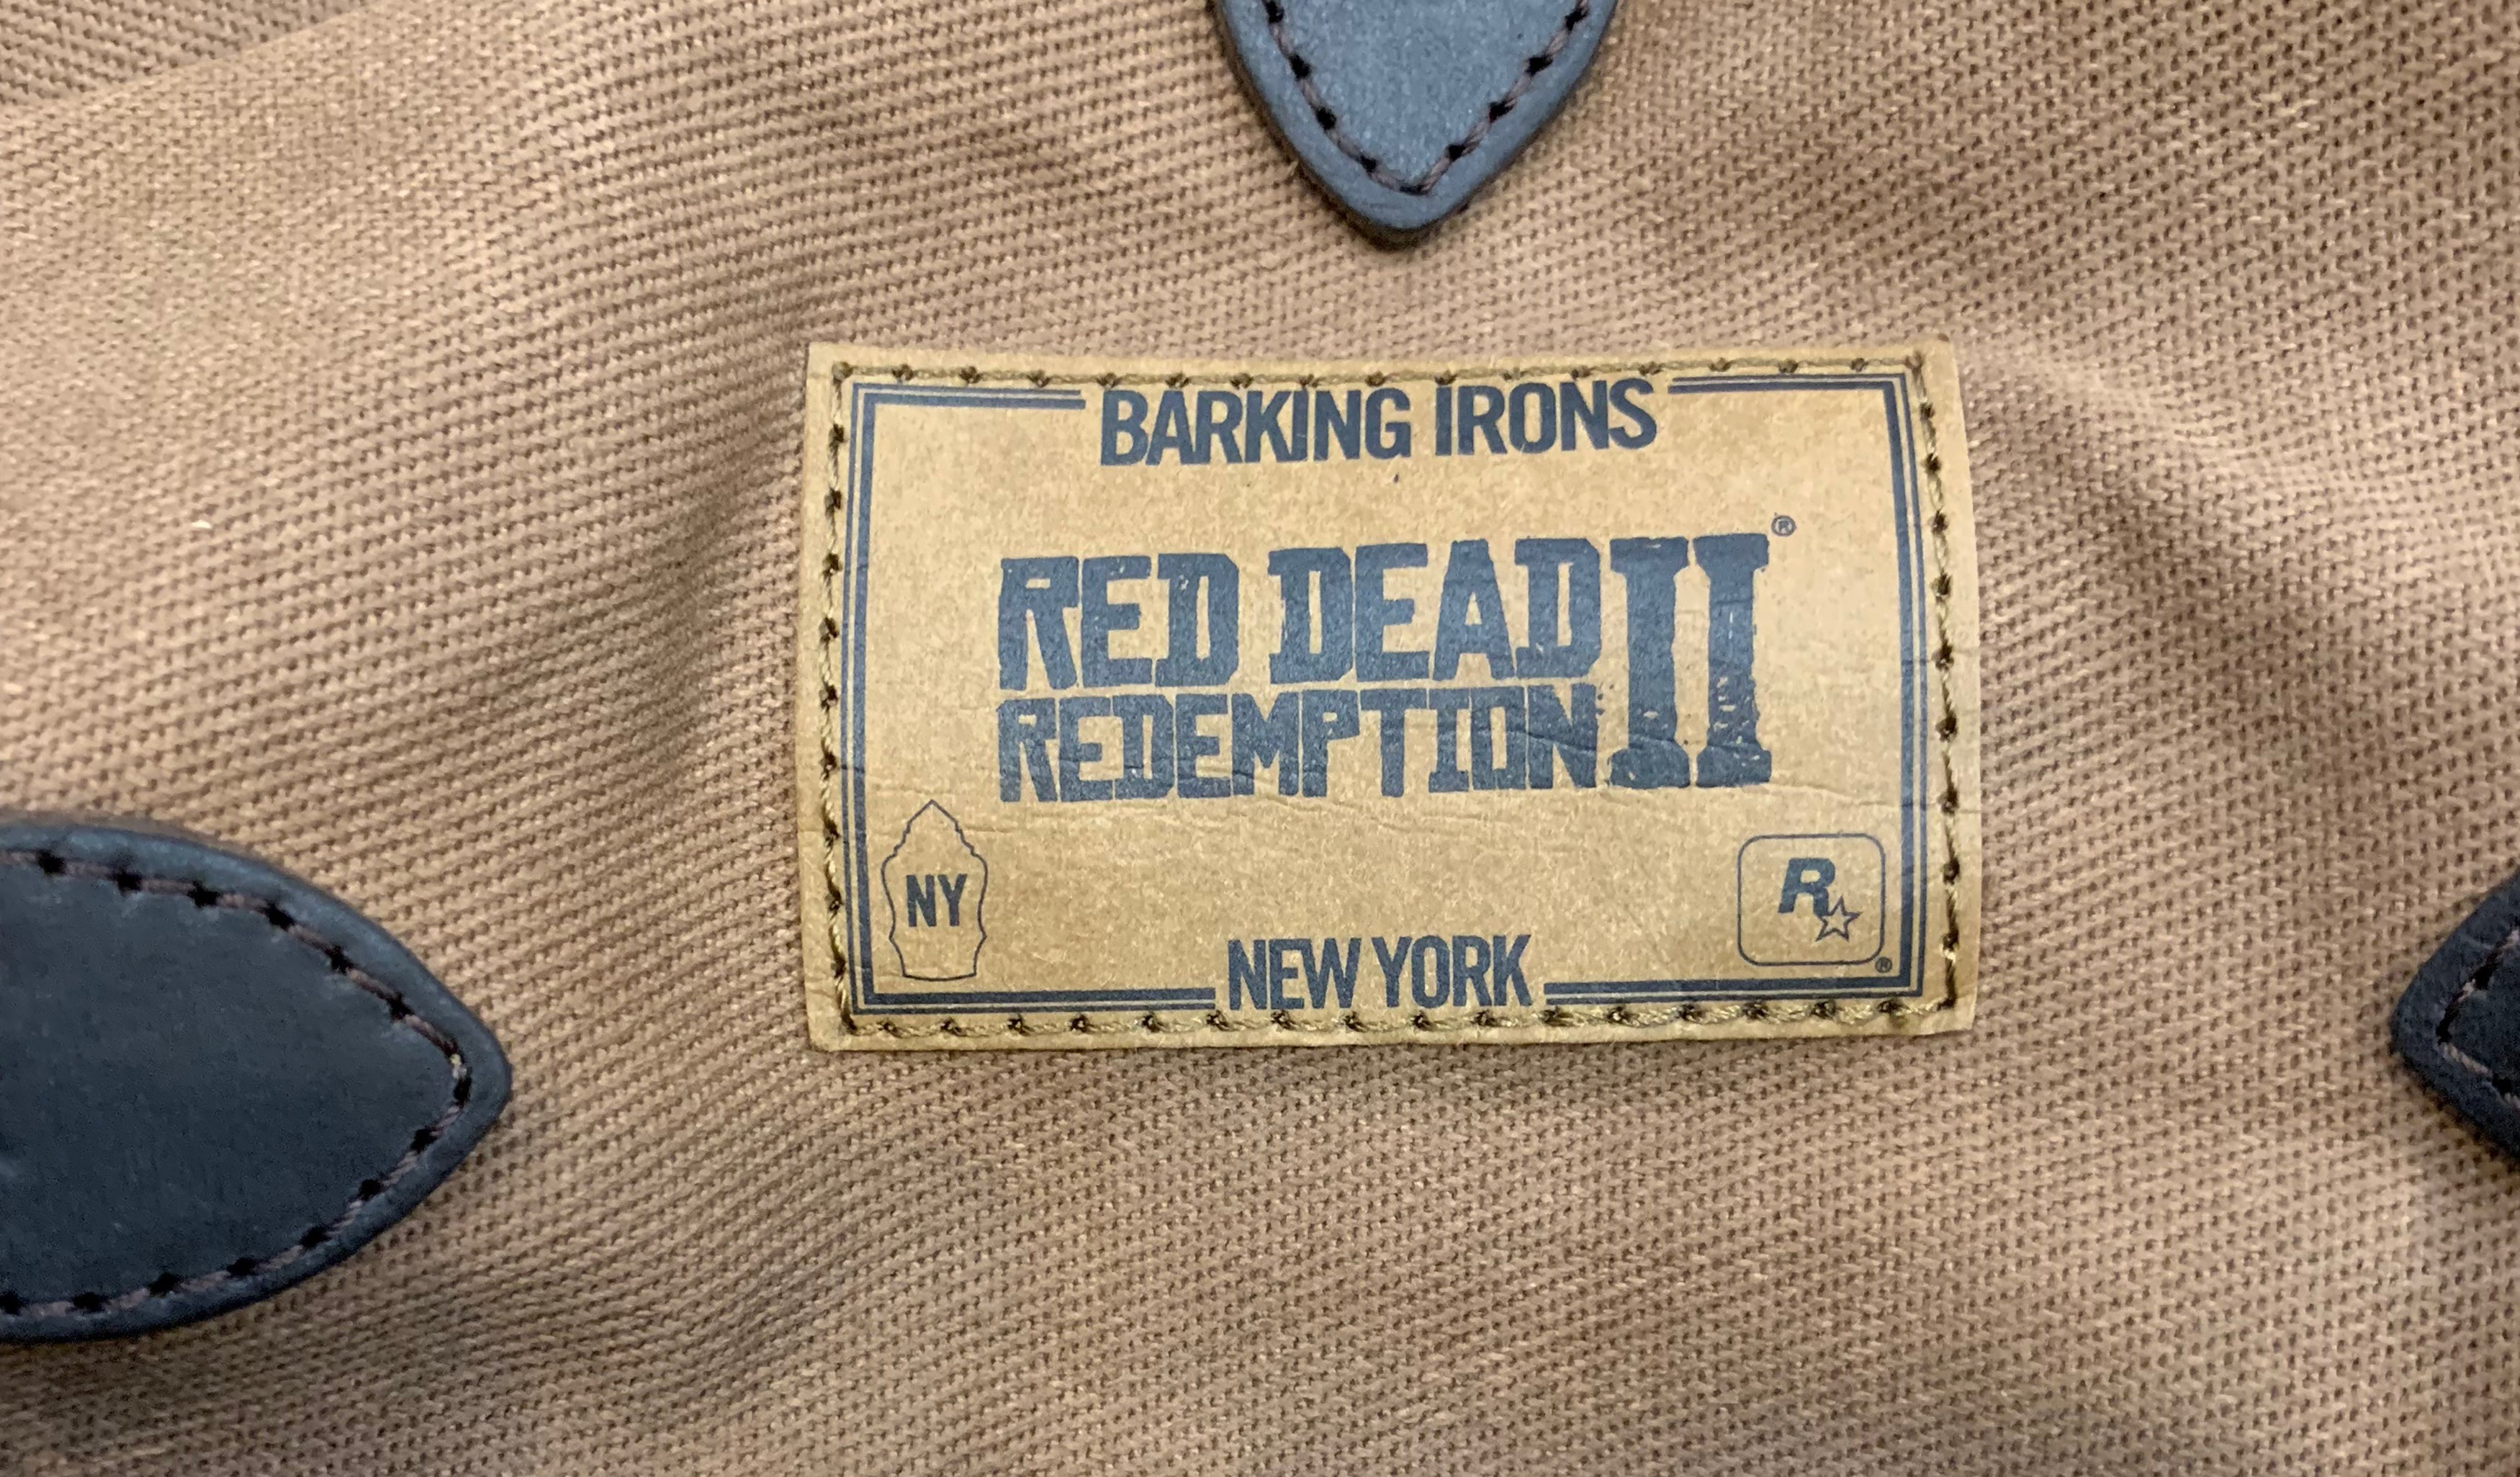 Rockstar Games Barking Irons RDR2 Duffel Bag Limited Edition